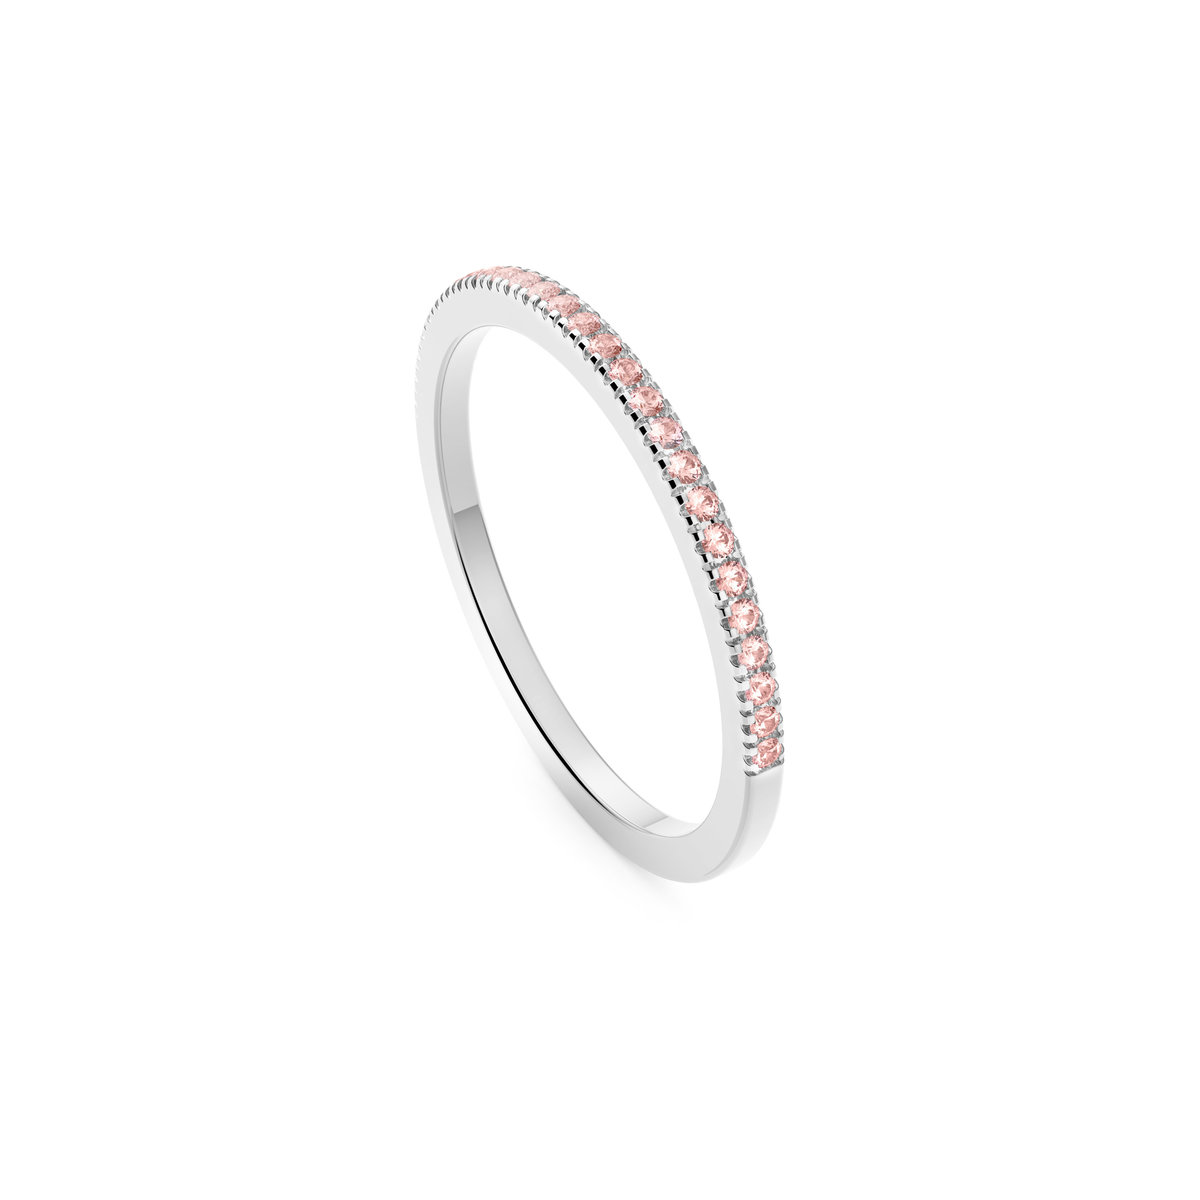 Attraction Moon Ring